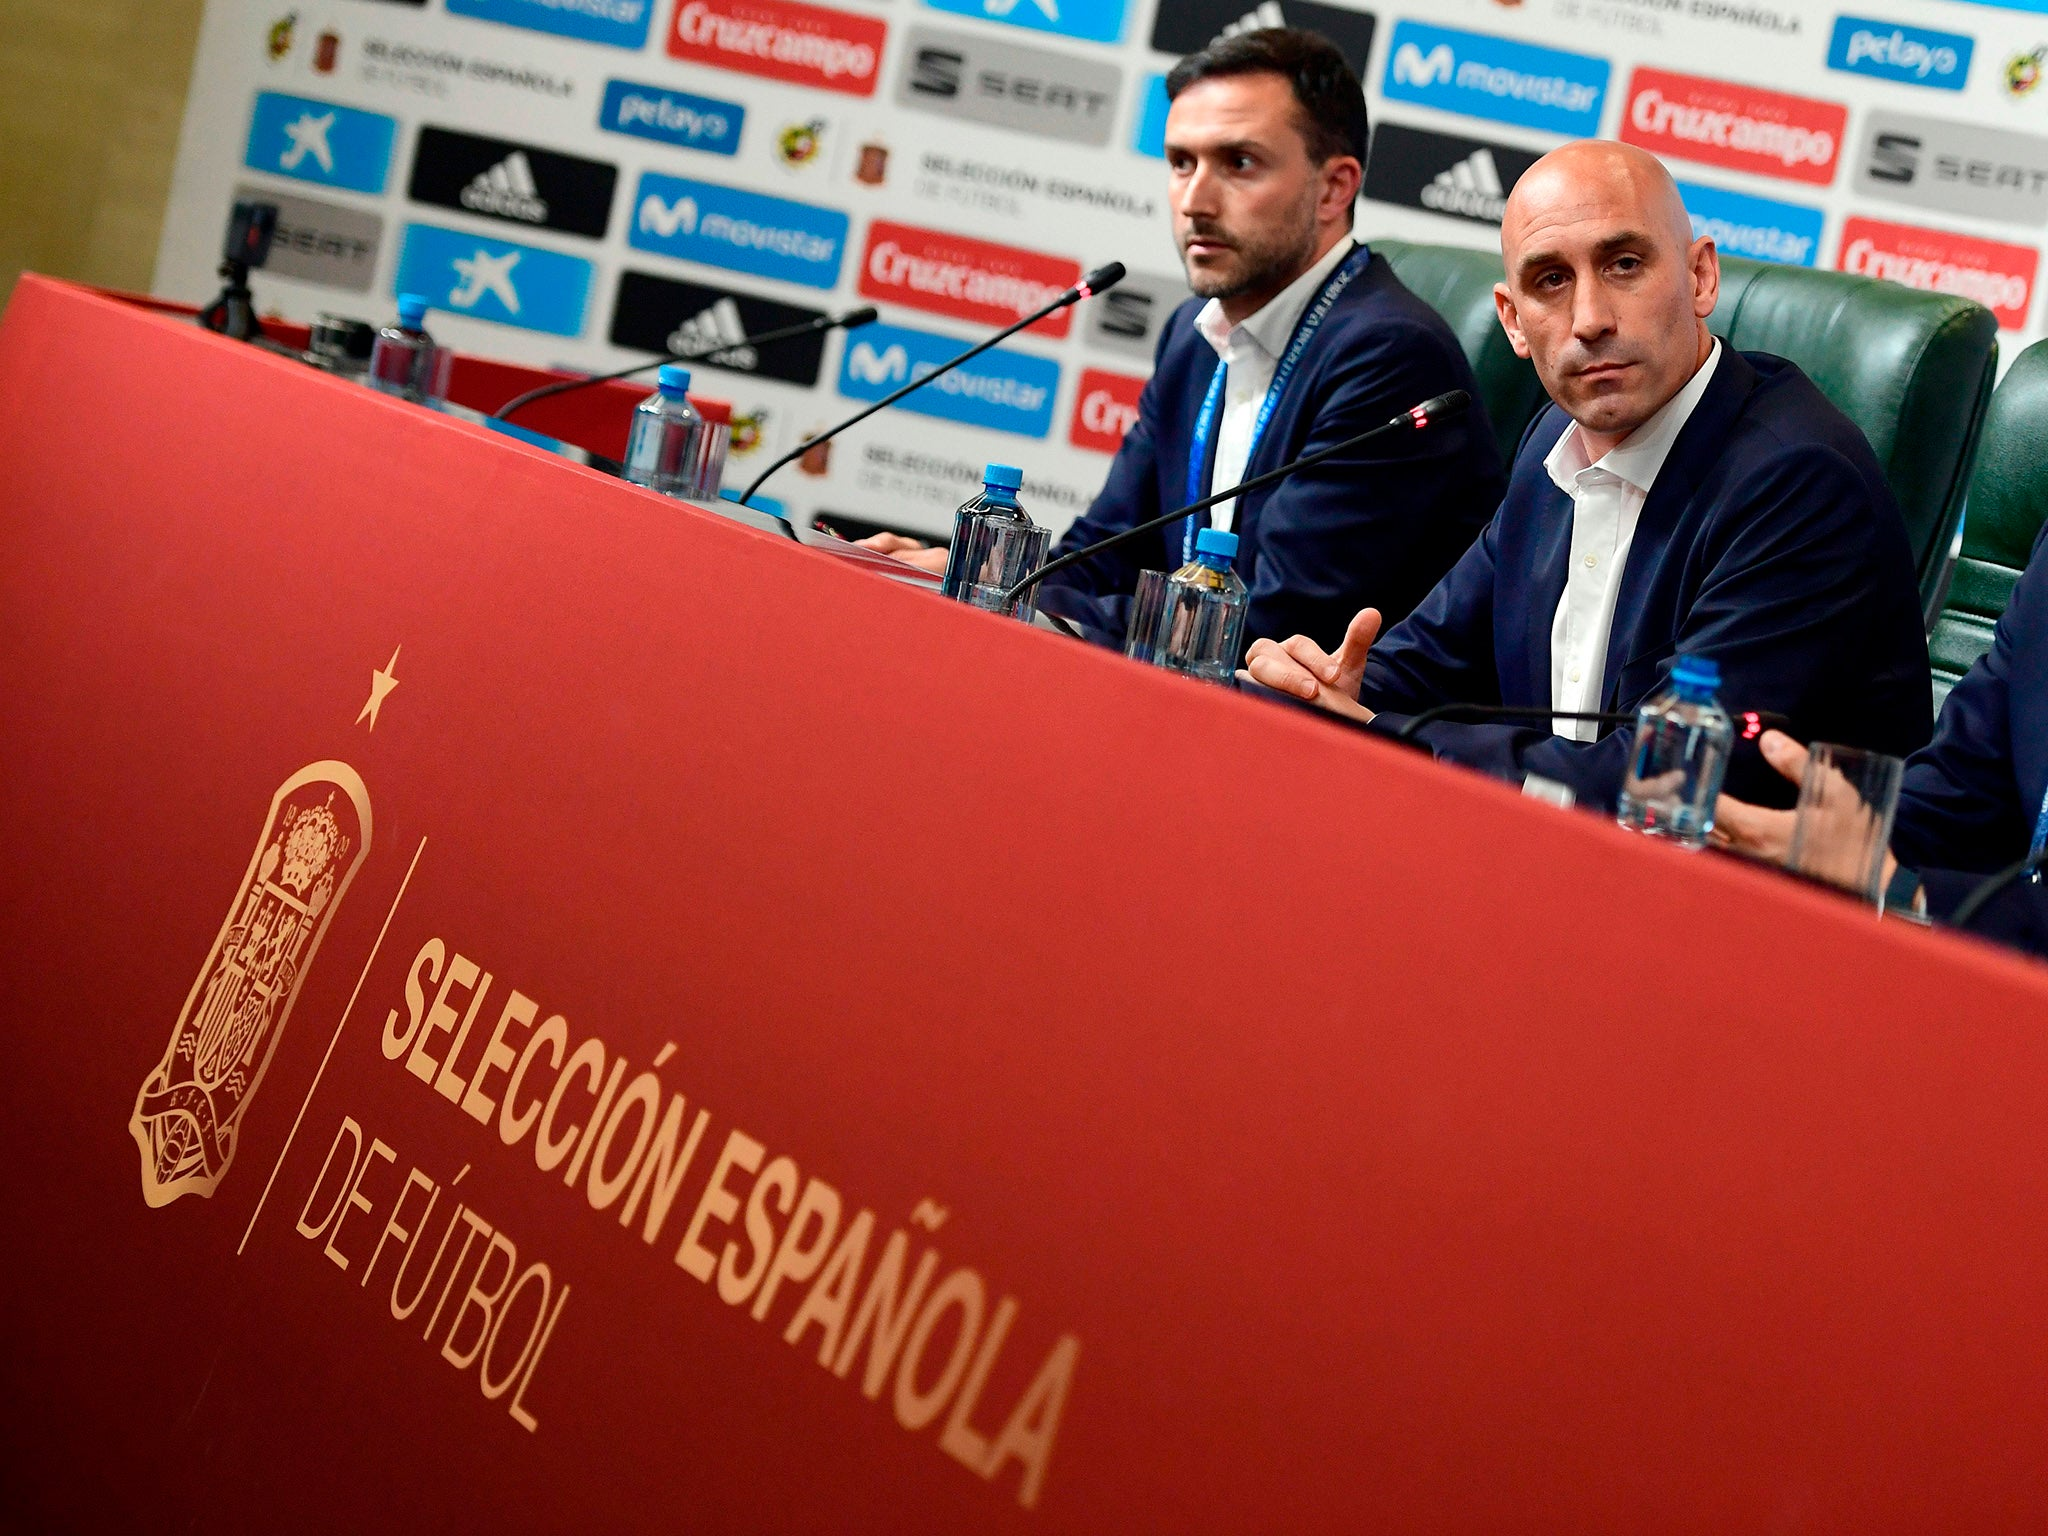 Julen Lopetegui sacked: A cannon of errors from Real Madrid to Spanish FA sees World Cup unnecessarily in tatters